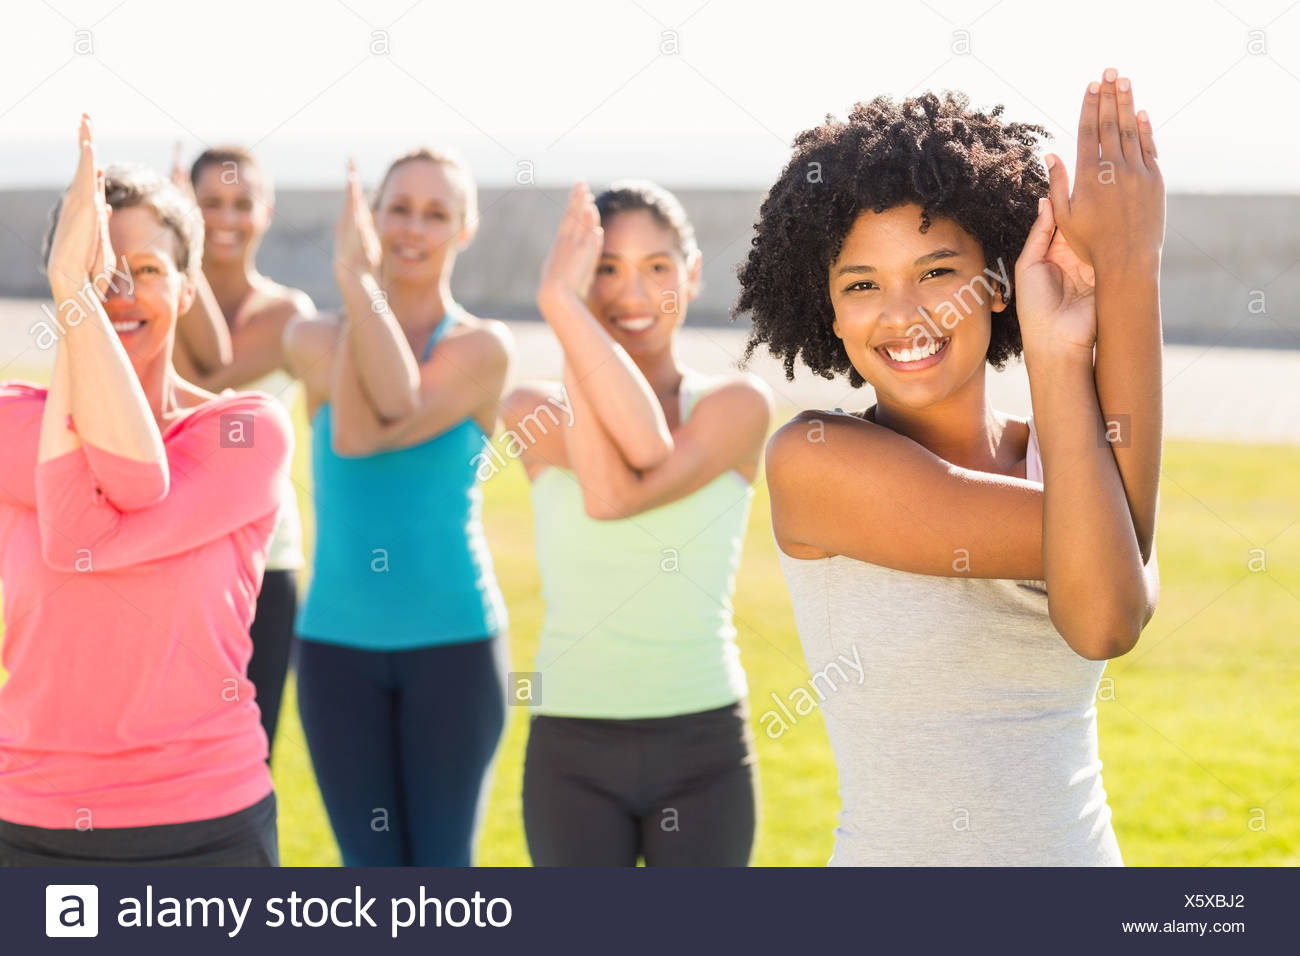 Smiling sporty women doing eagle pose in yoga class - Stock Image